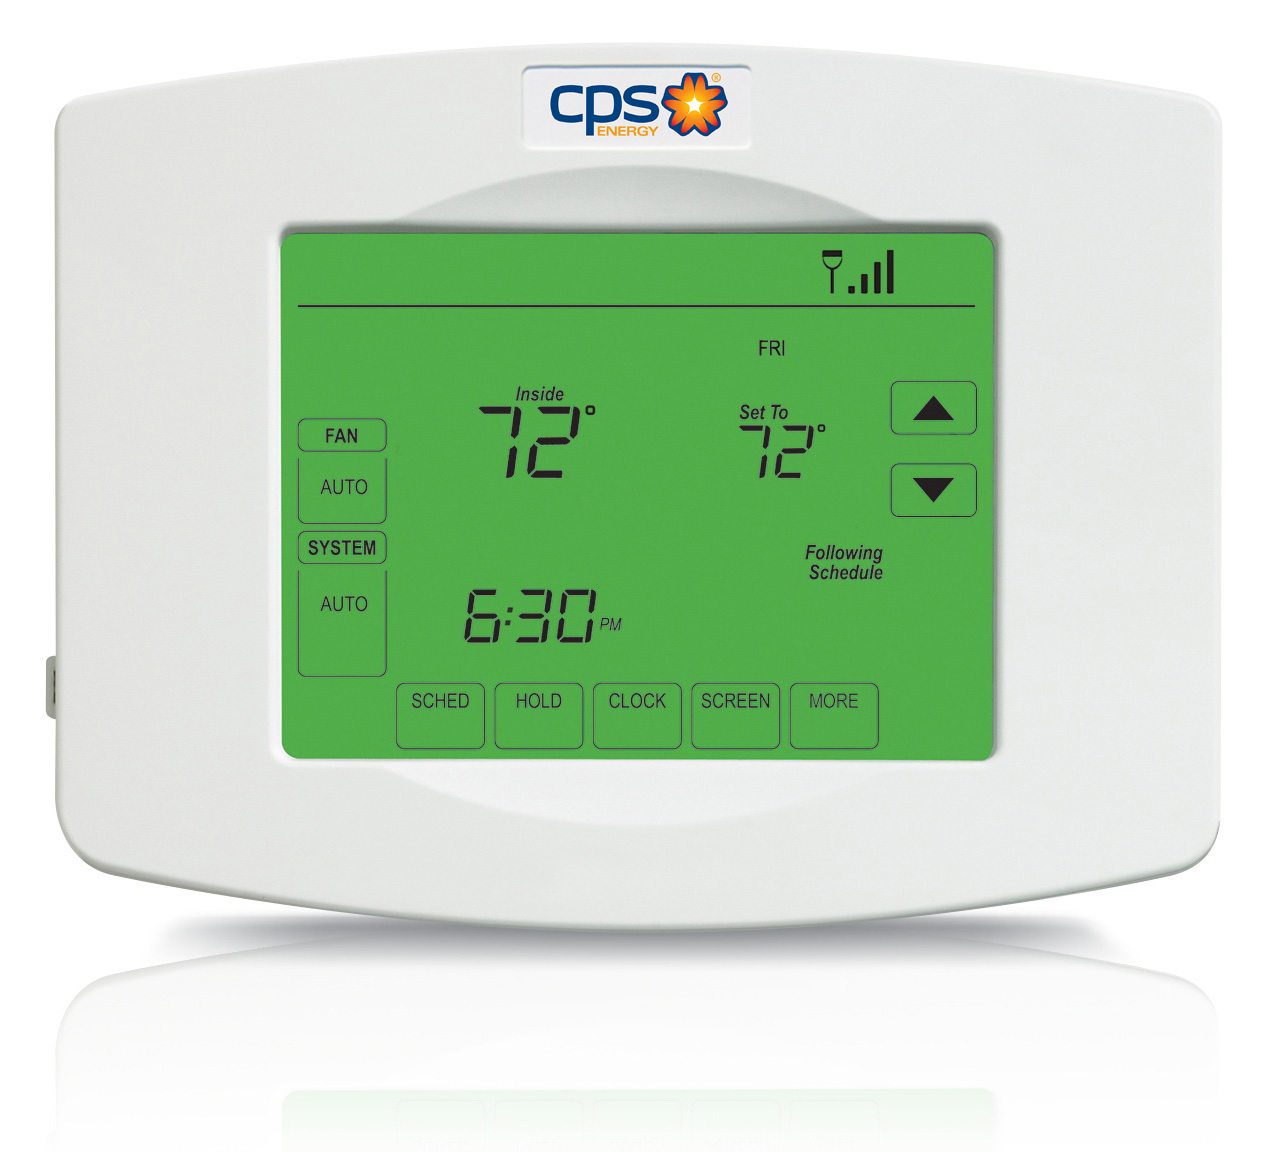 Using a Smart Thermostat can be a smart move #103C79